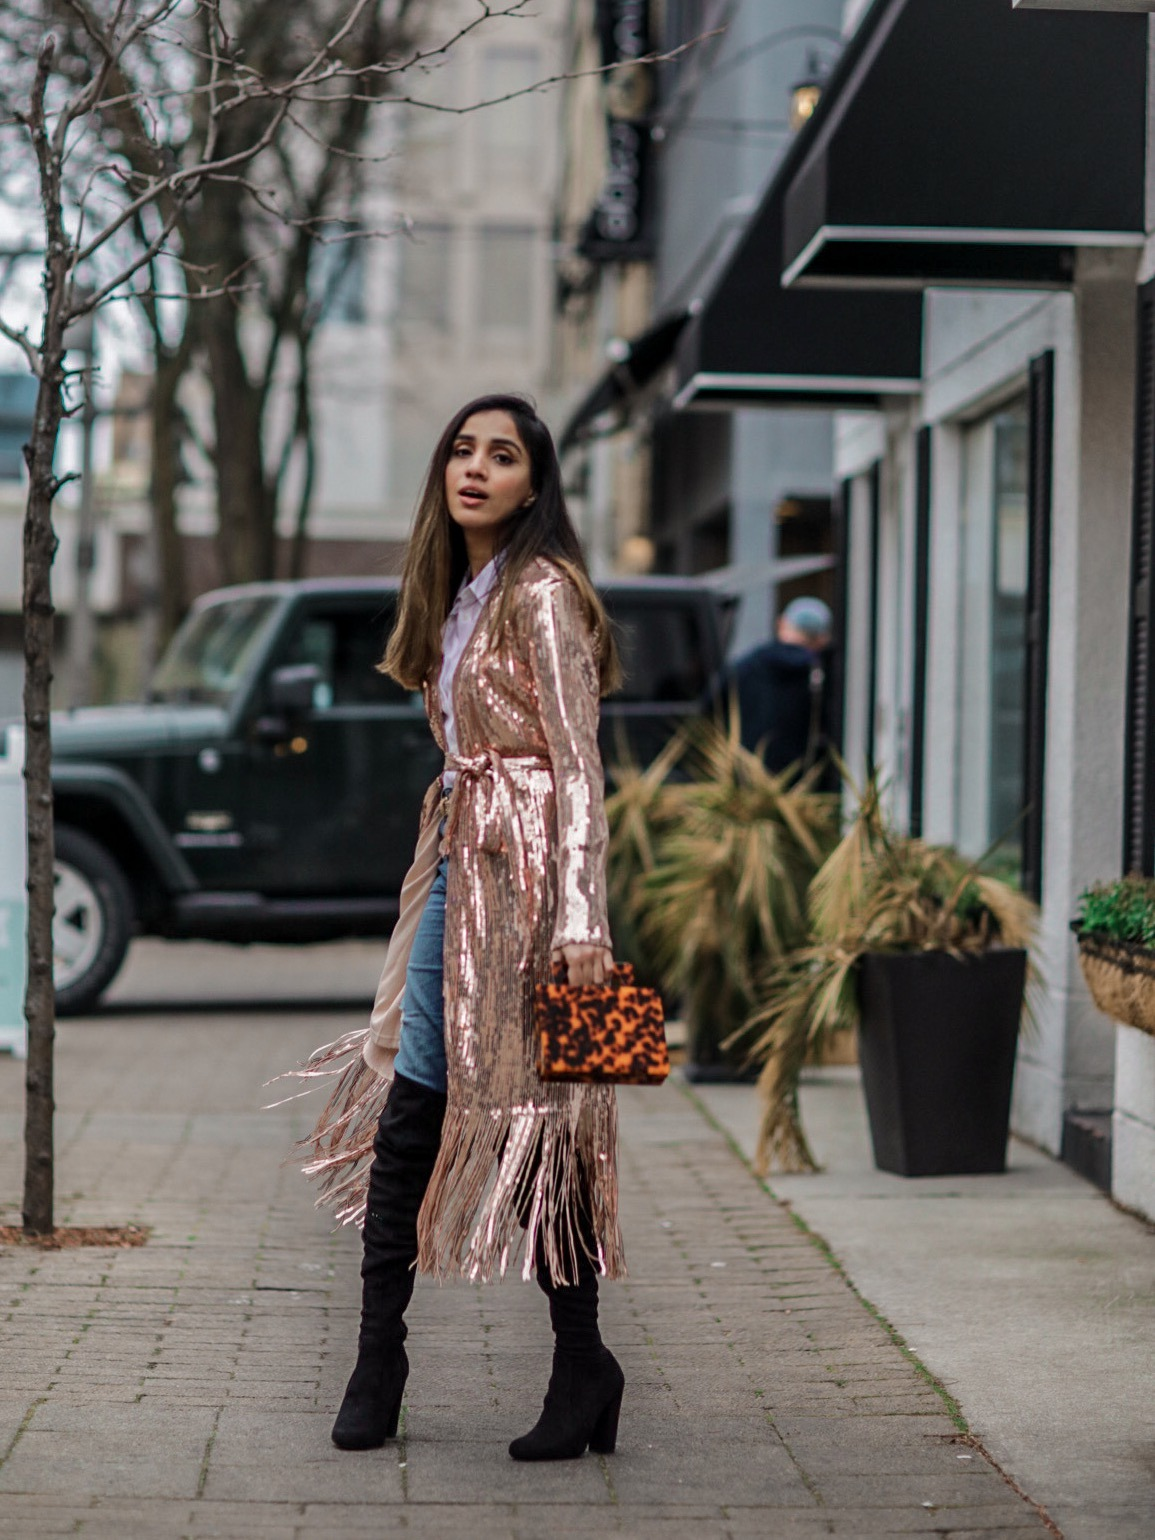 Holiday Outfits Roundup 2019 Rose Gold Sequin Fringe Duster Lulus Faiza Inam 1